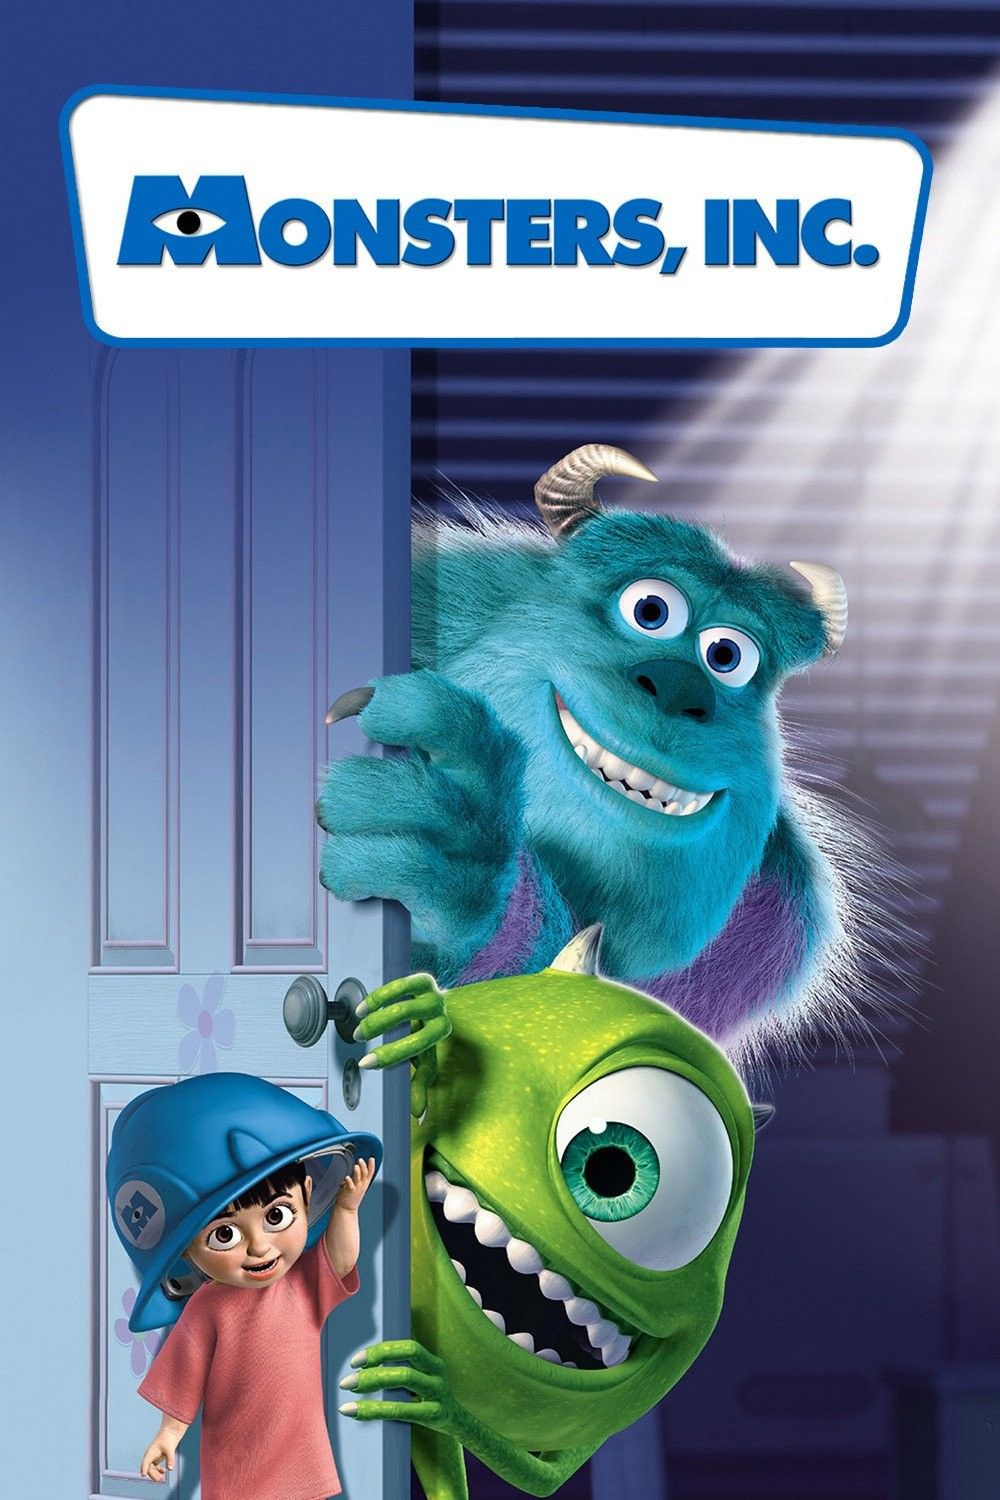 Monsters Inc. (2001) Watch Movies Free Online Watch